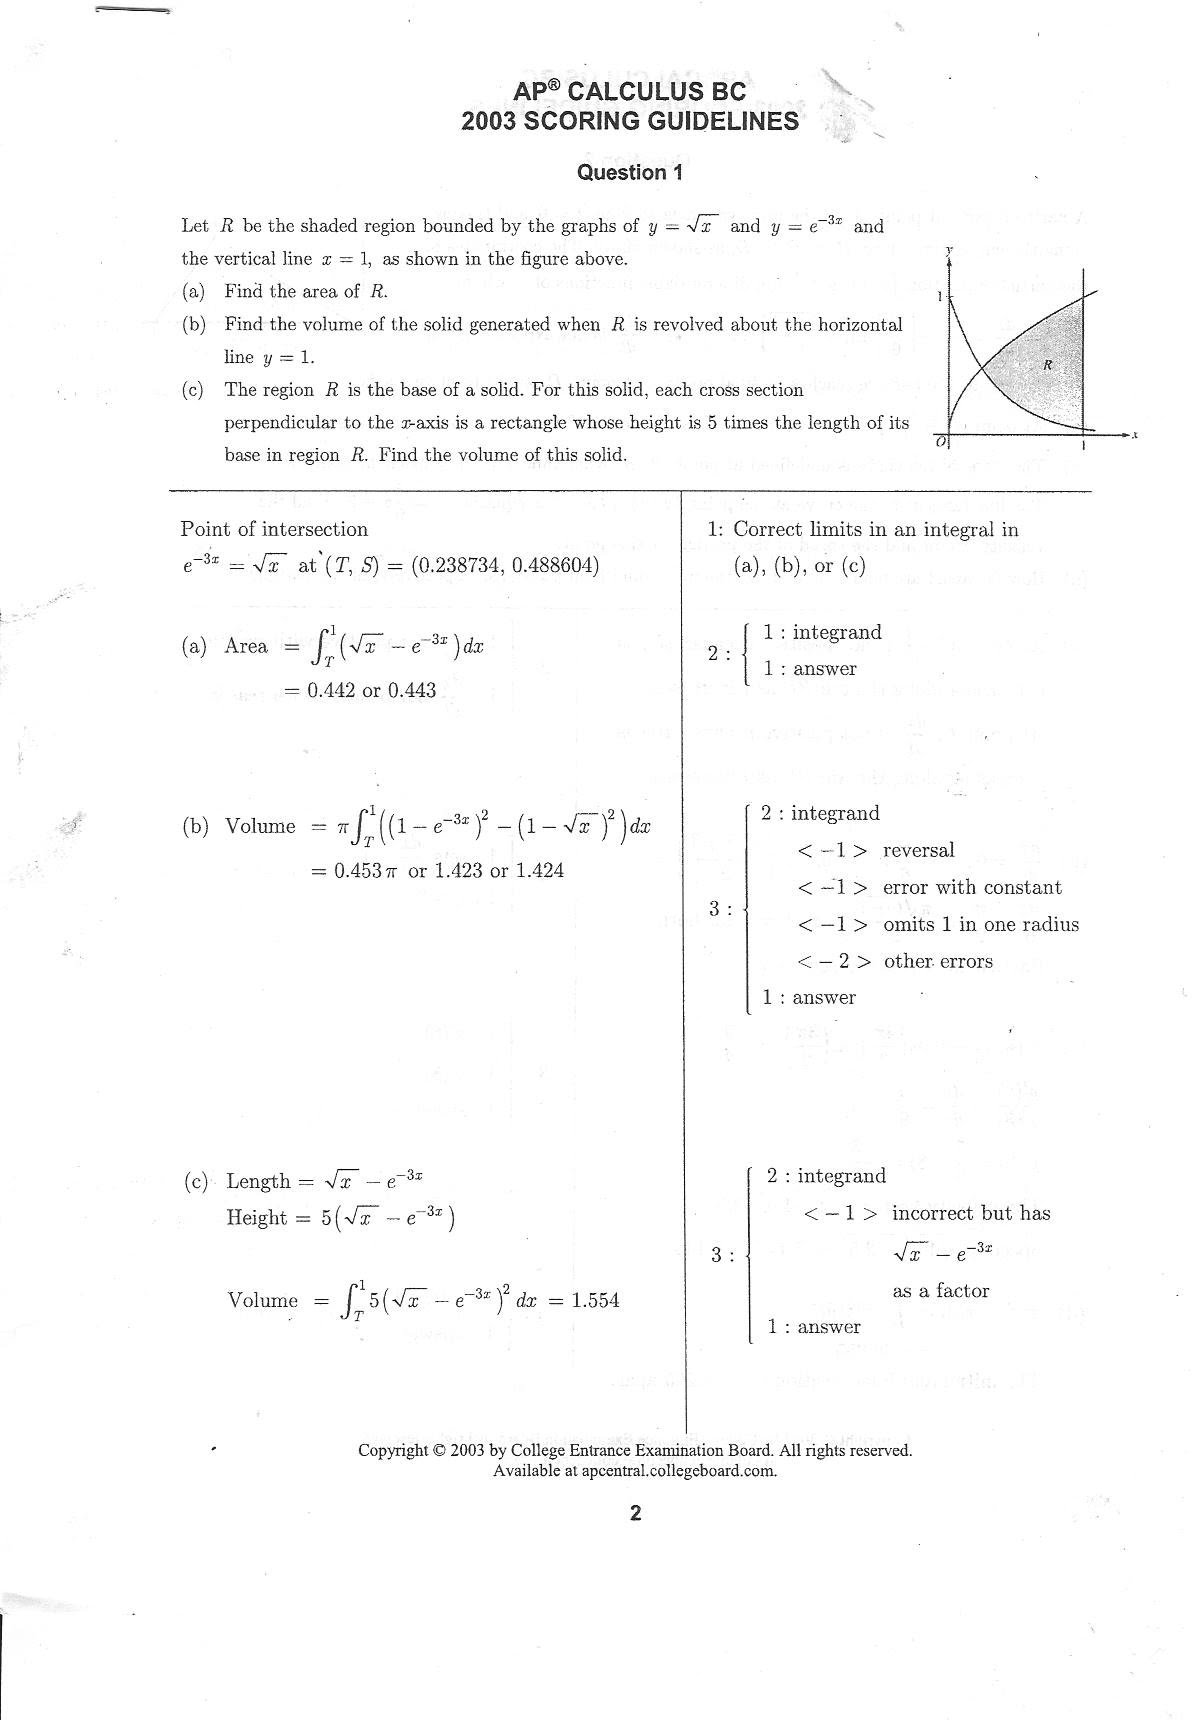 BC Calculus 2003 Question 1